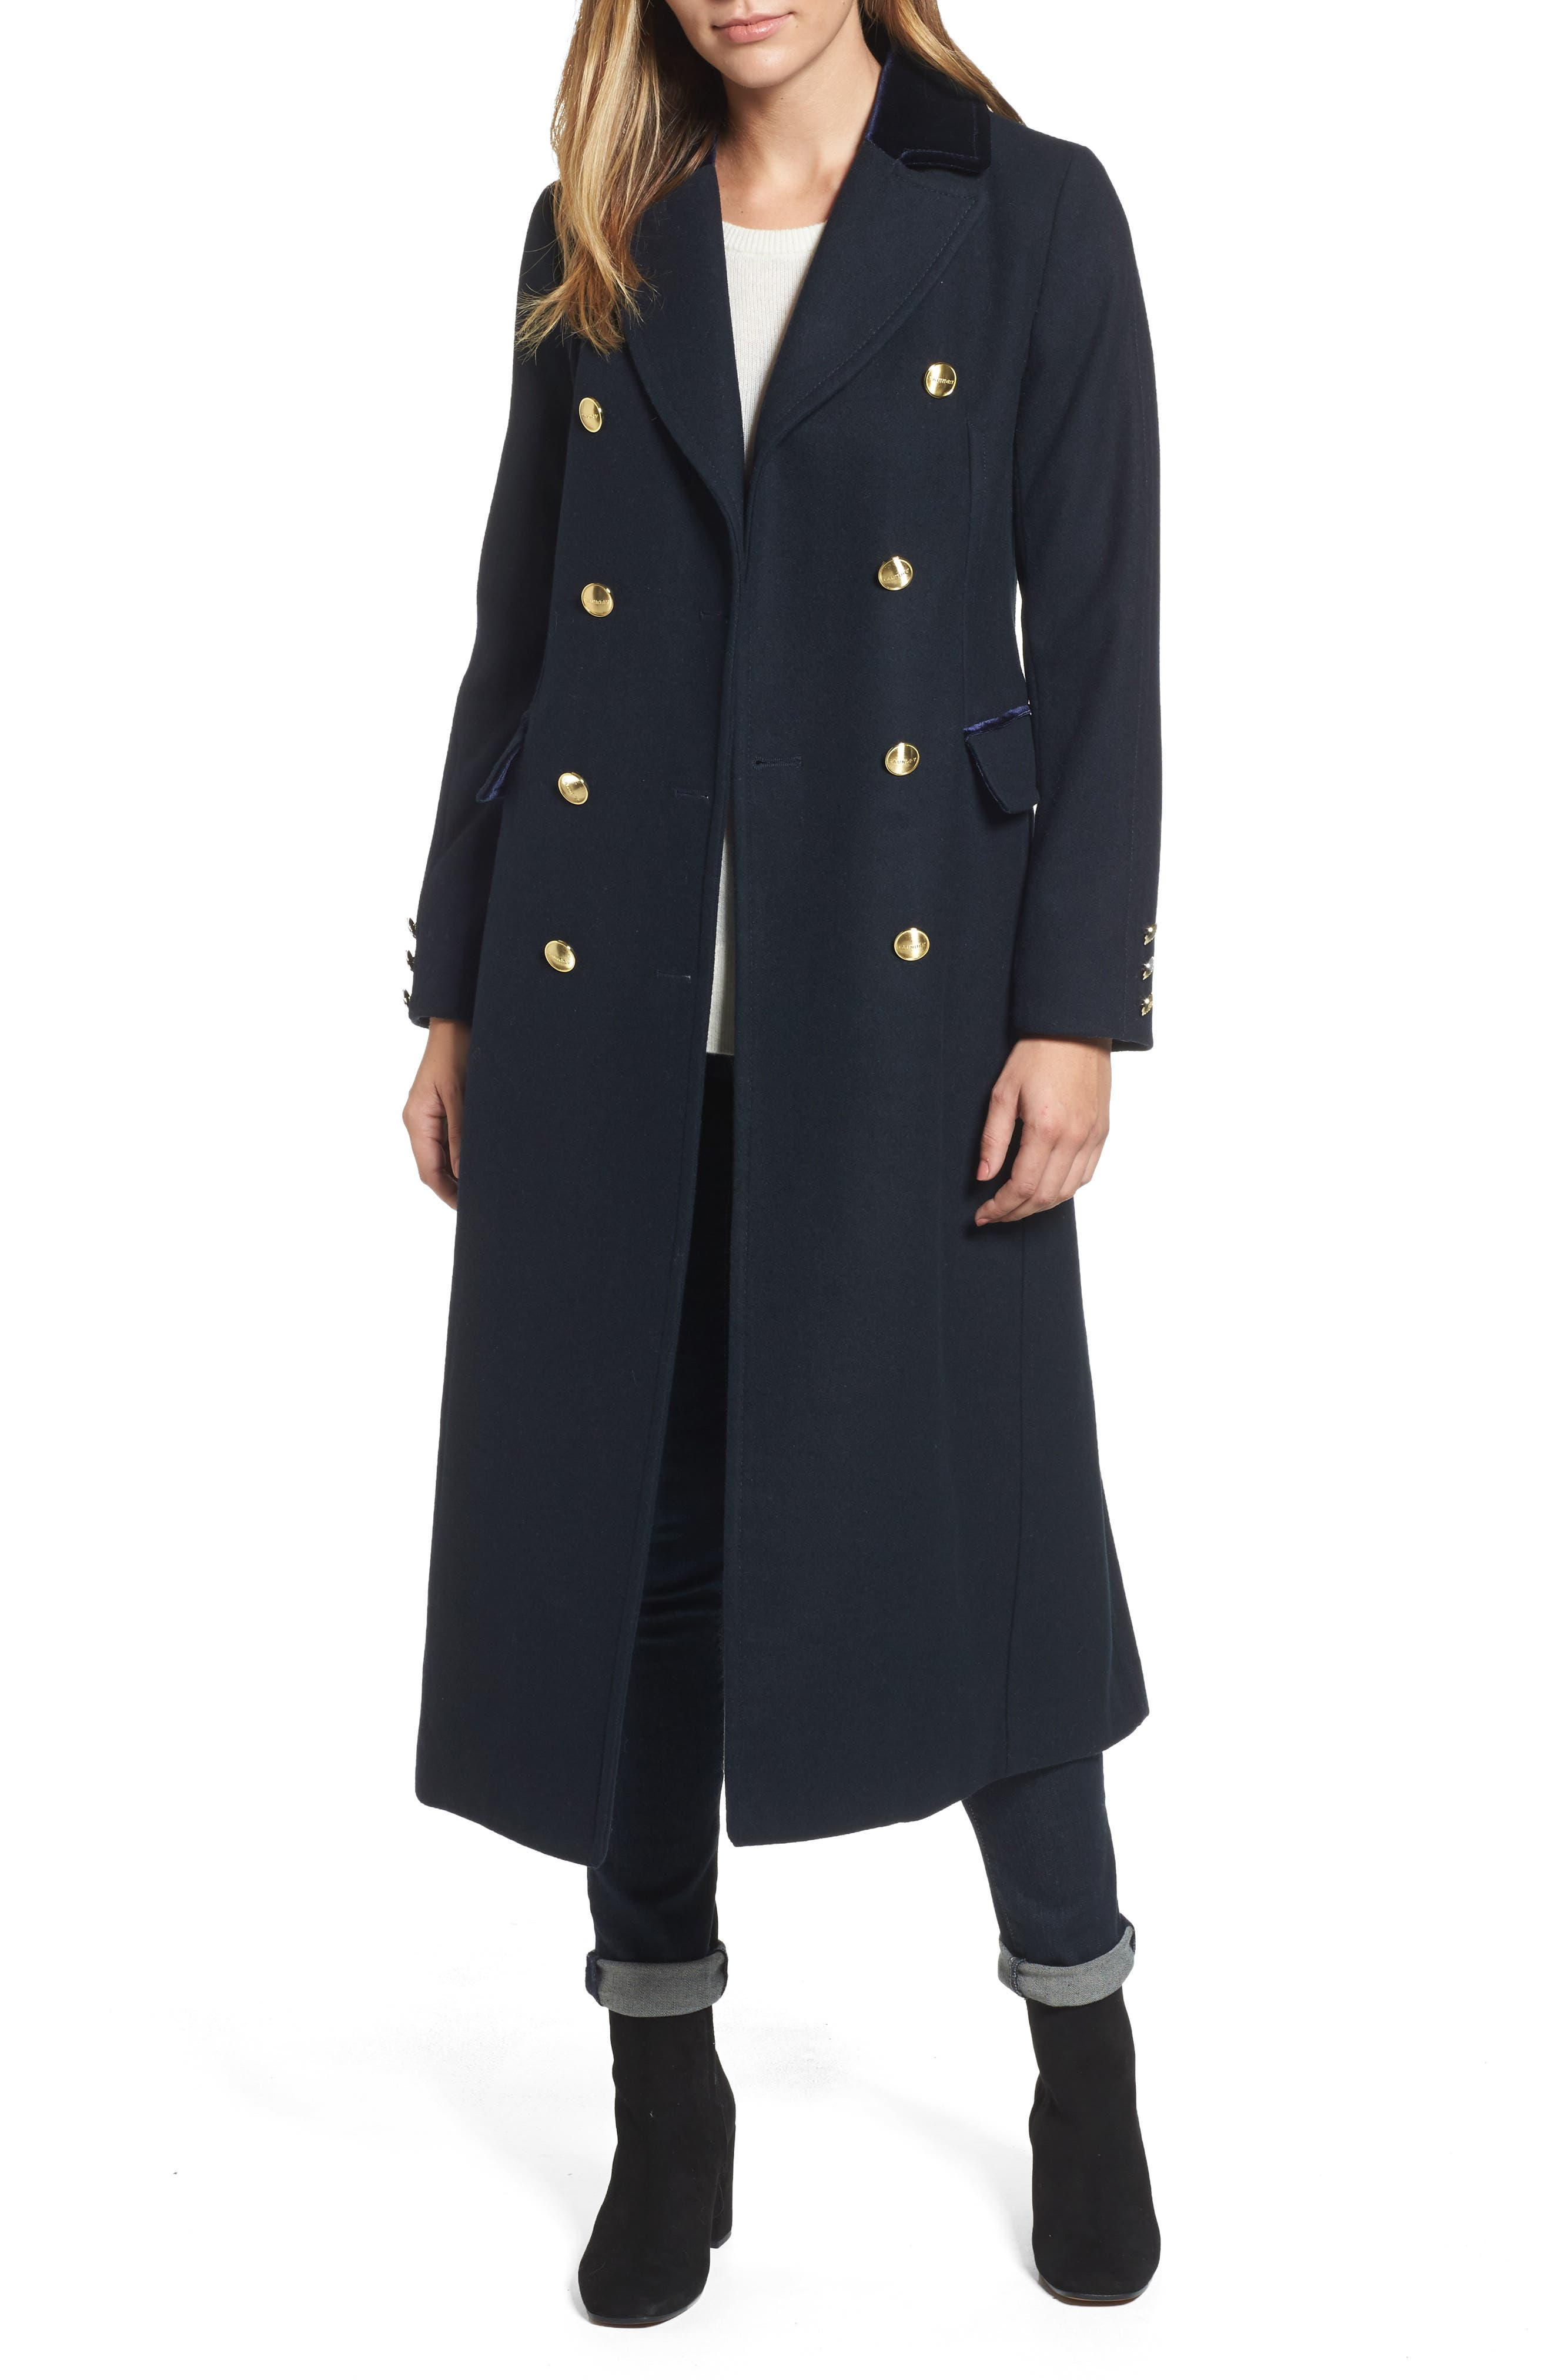 Main Image - Laundry by Shelli Segal Maxi Double Breasted Wool Blend Military Coat